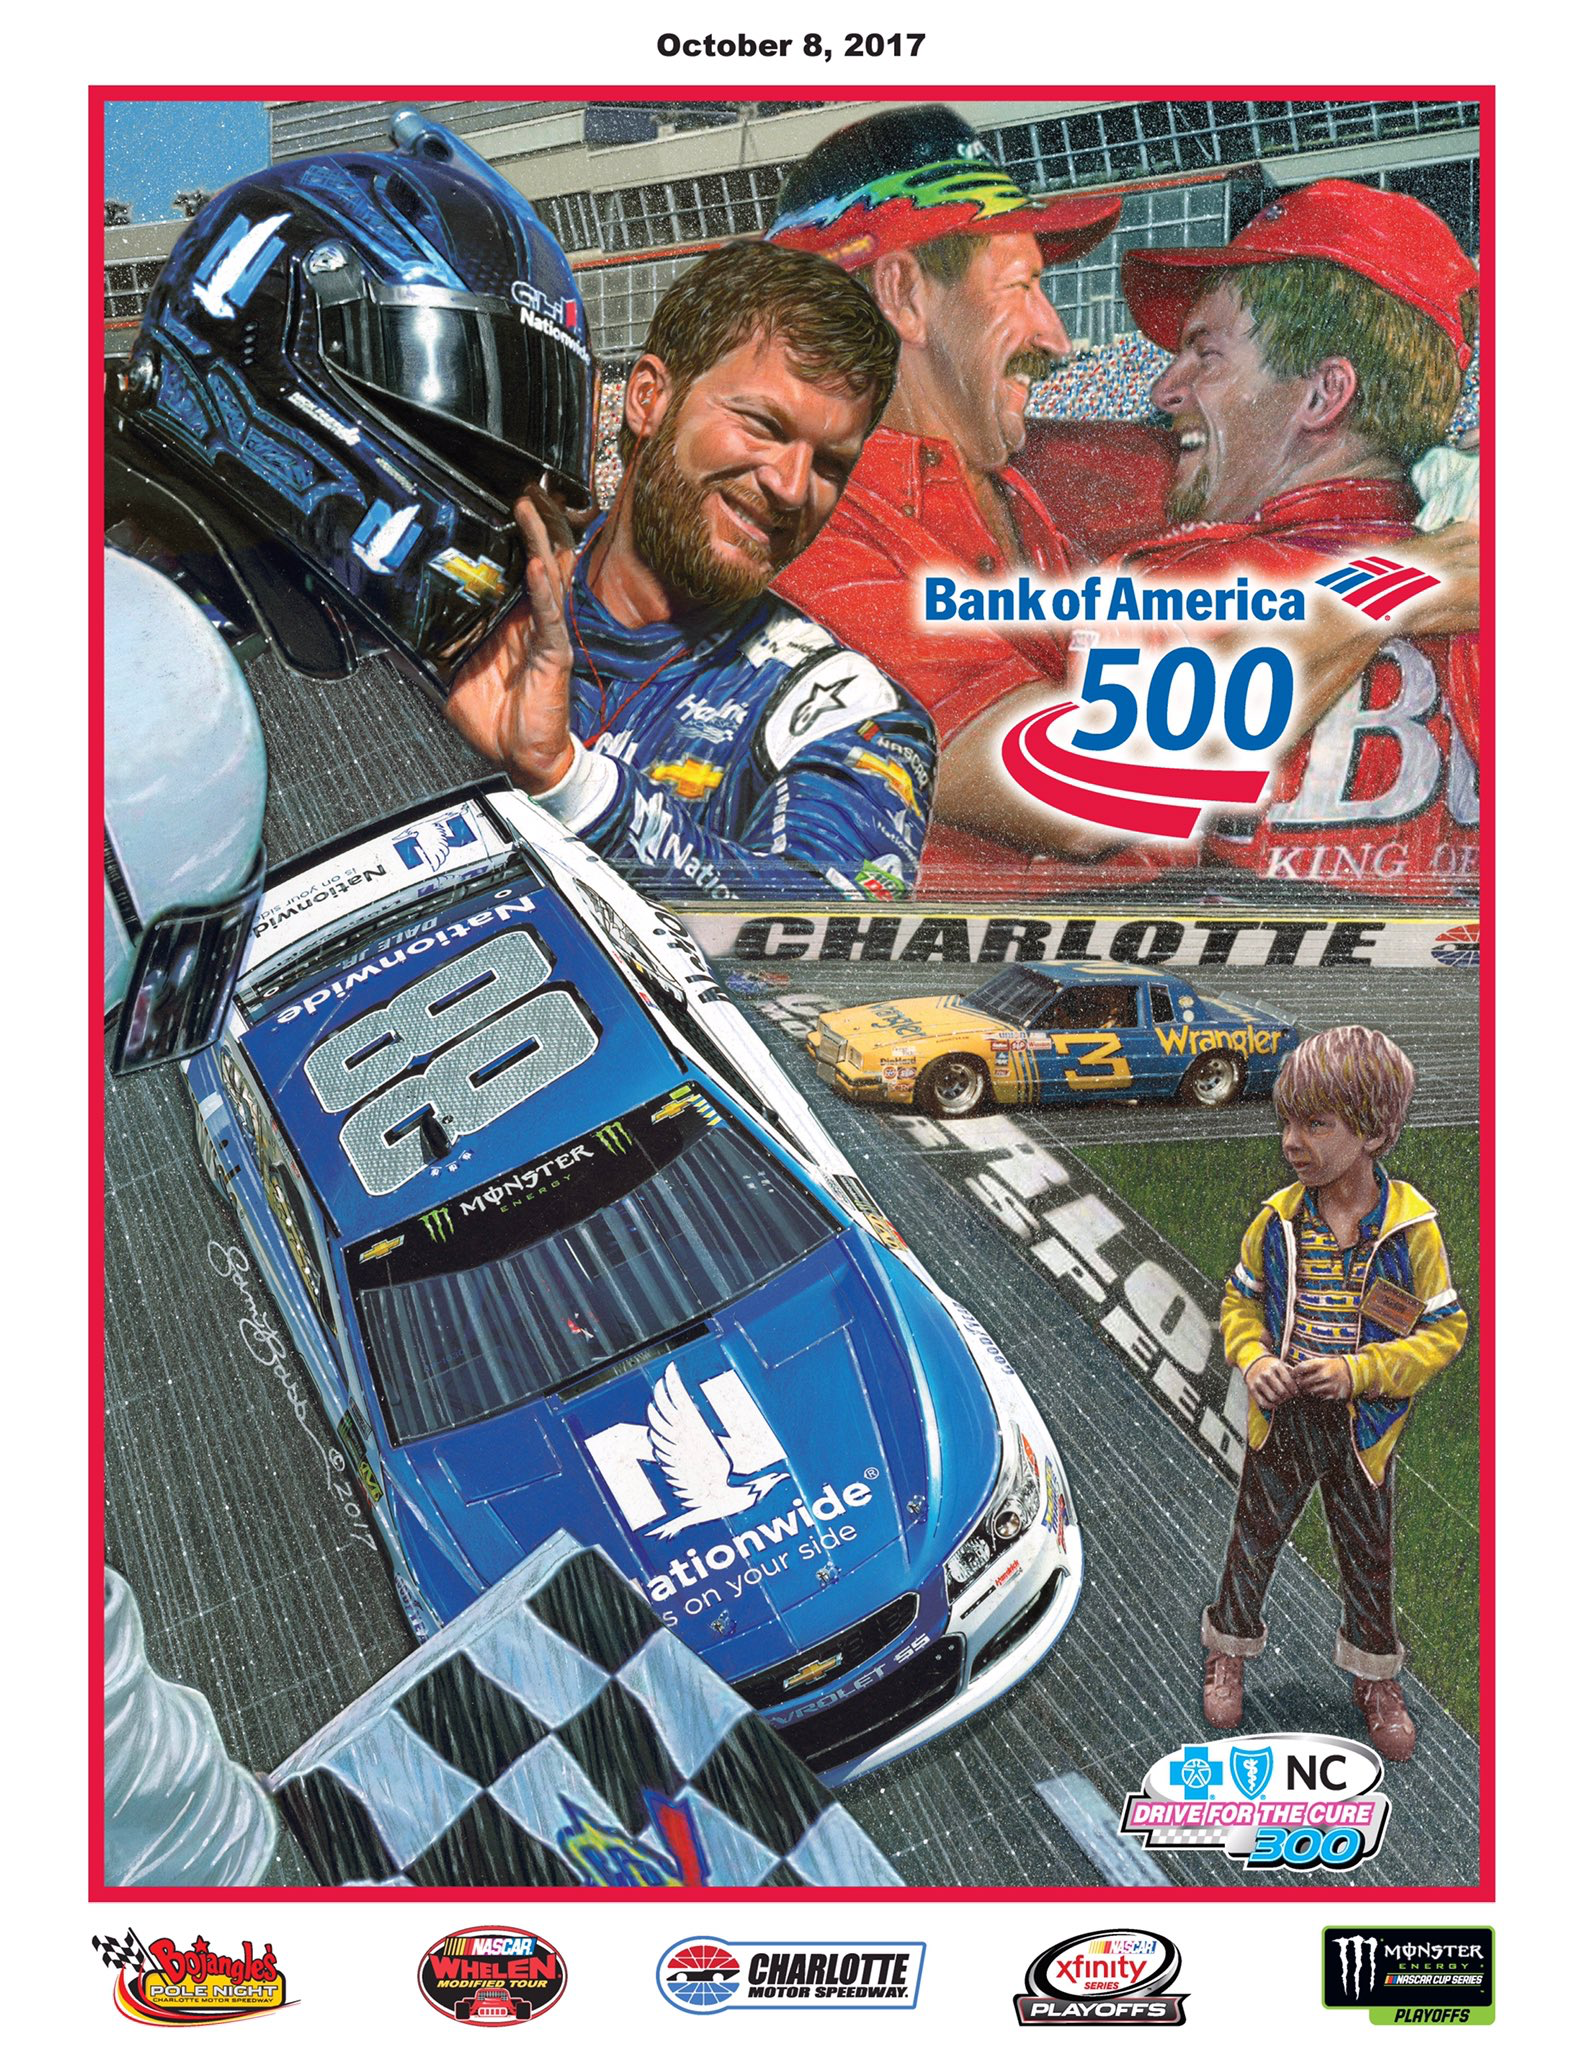 Pin by Dbayles on Animal wallpaper Dale jr, Bank of